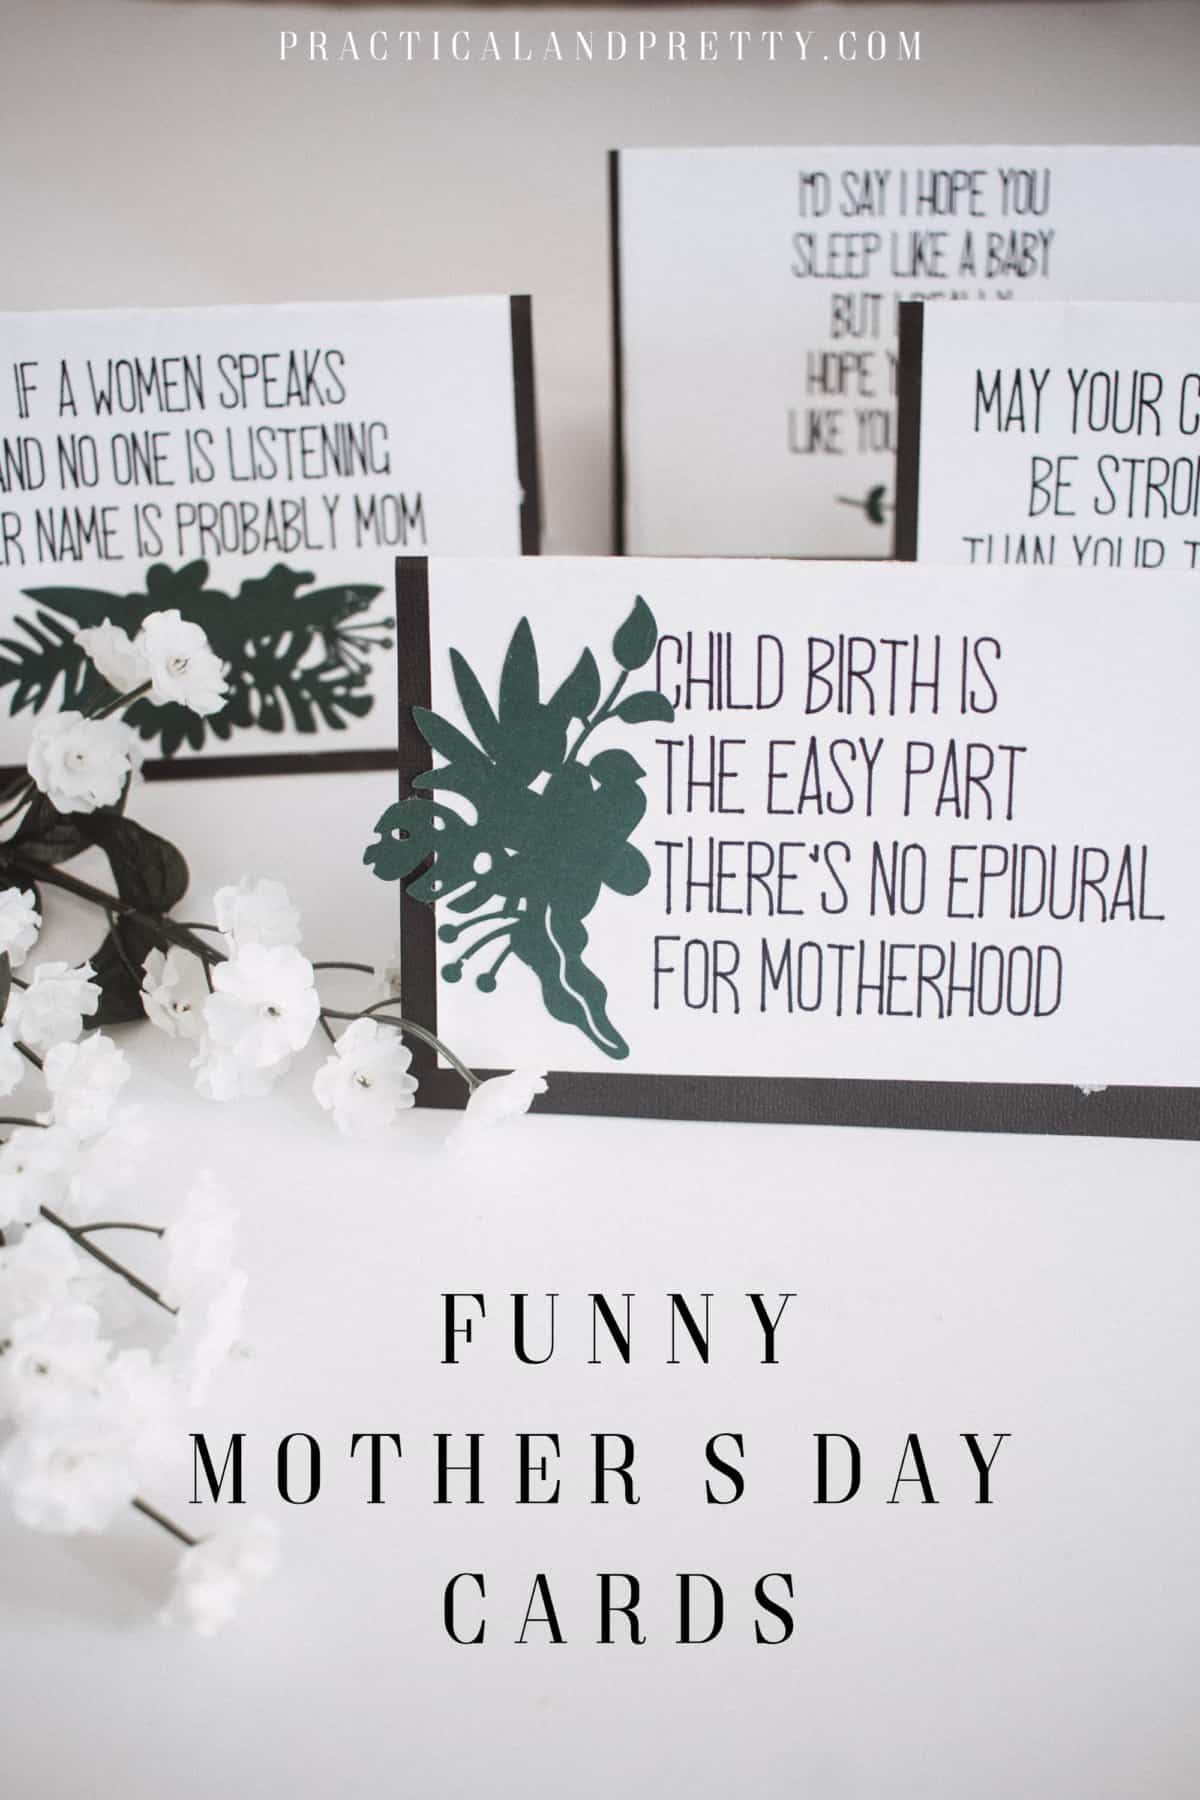 Funny Mother S Day Quotes Cards Practical And Pretty